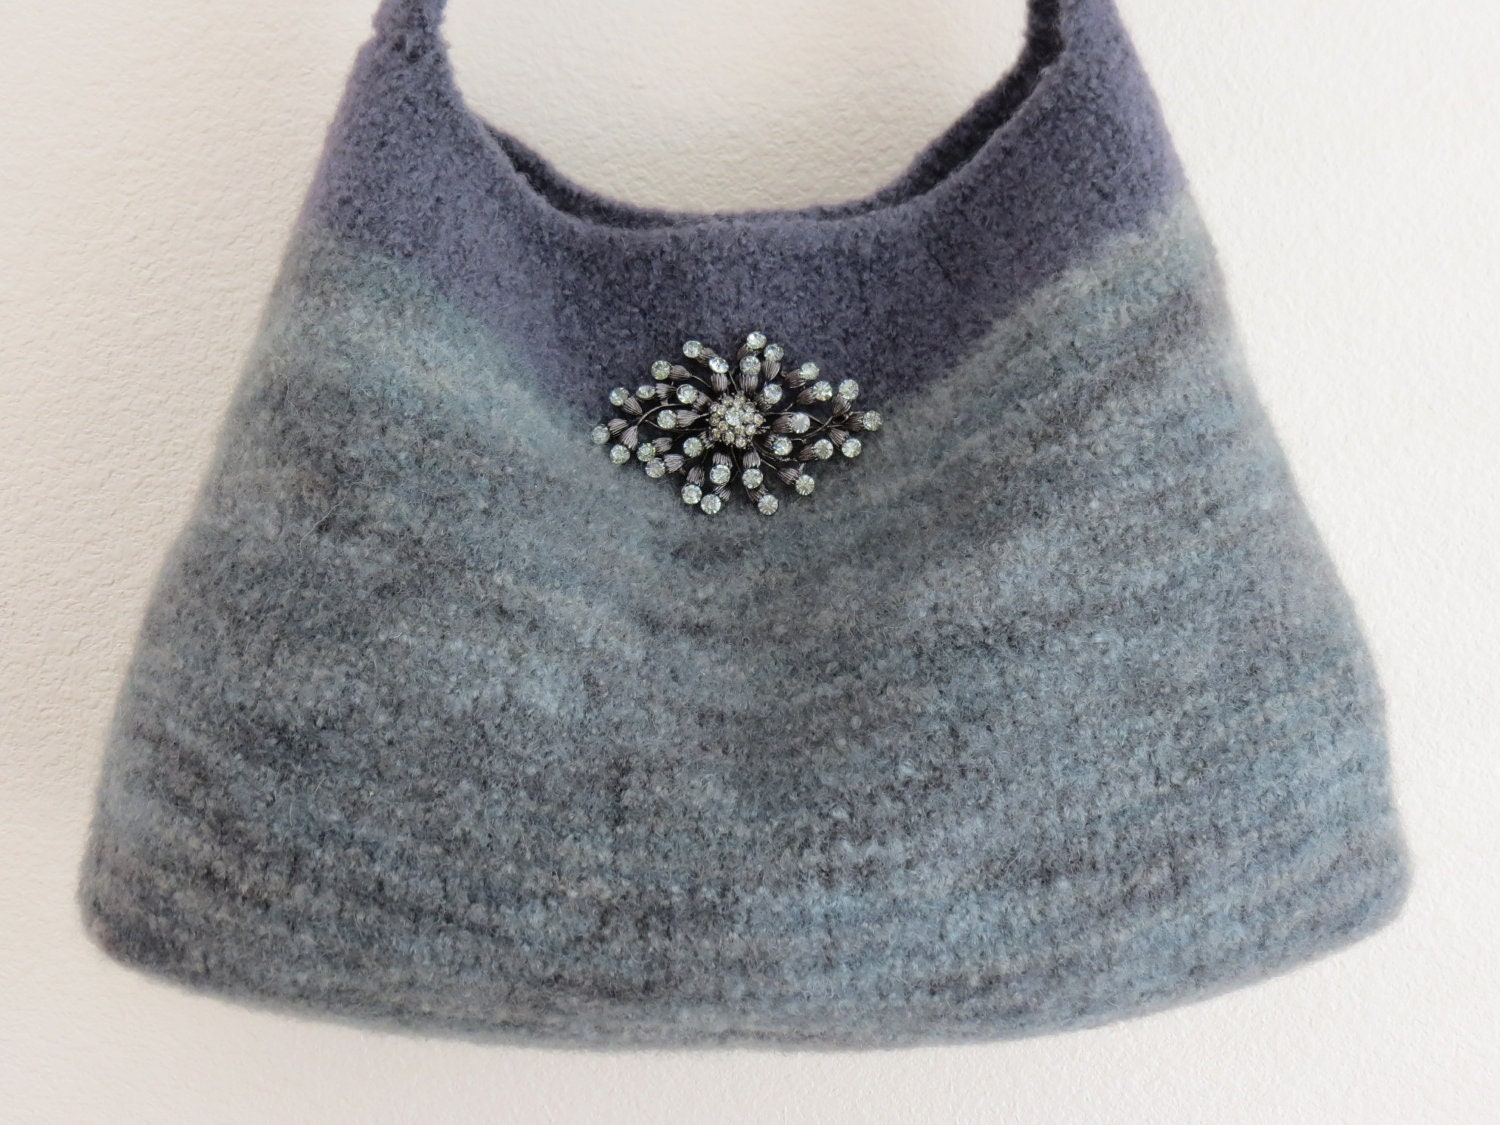 Felted purse pattern knit bag pattern felted purse knitted felted purse pattern knit bag pattern felted purse knitted purse knitting pattern autumn evening patterns by deborah oleary bankloansurffo Gallery